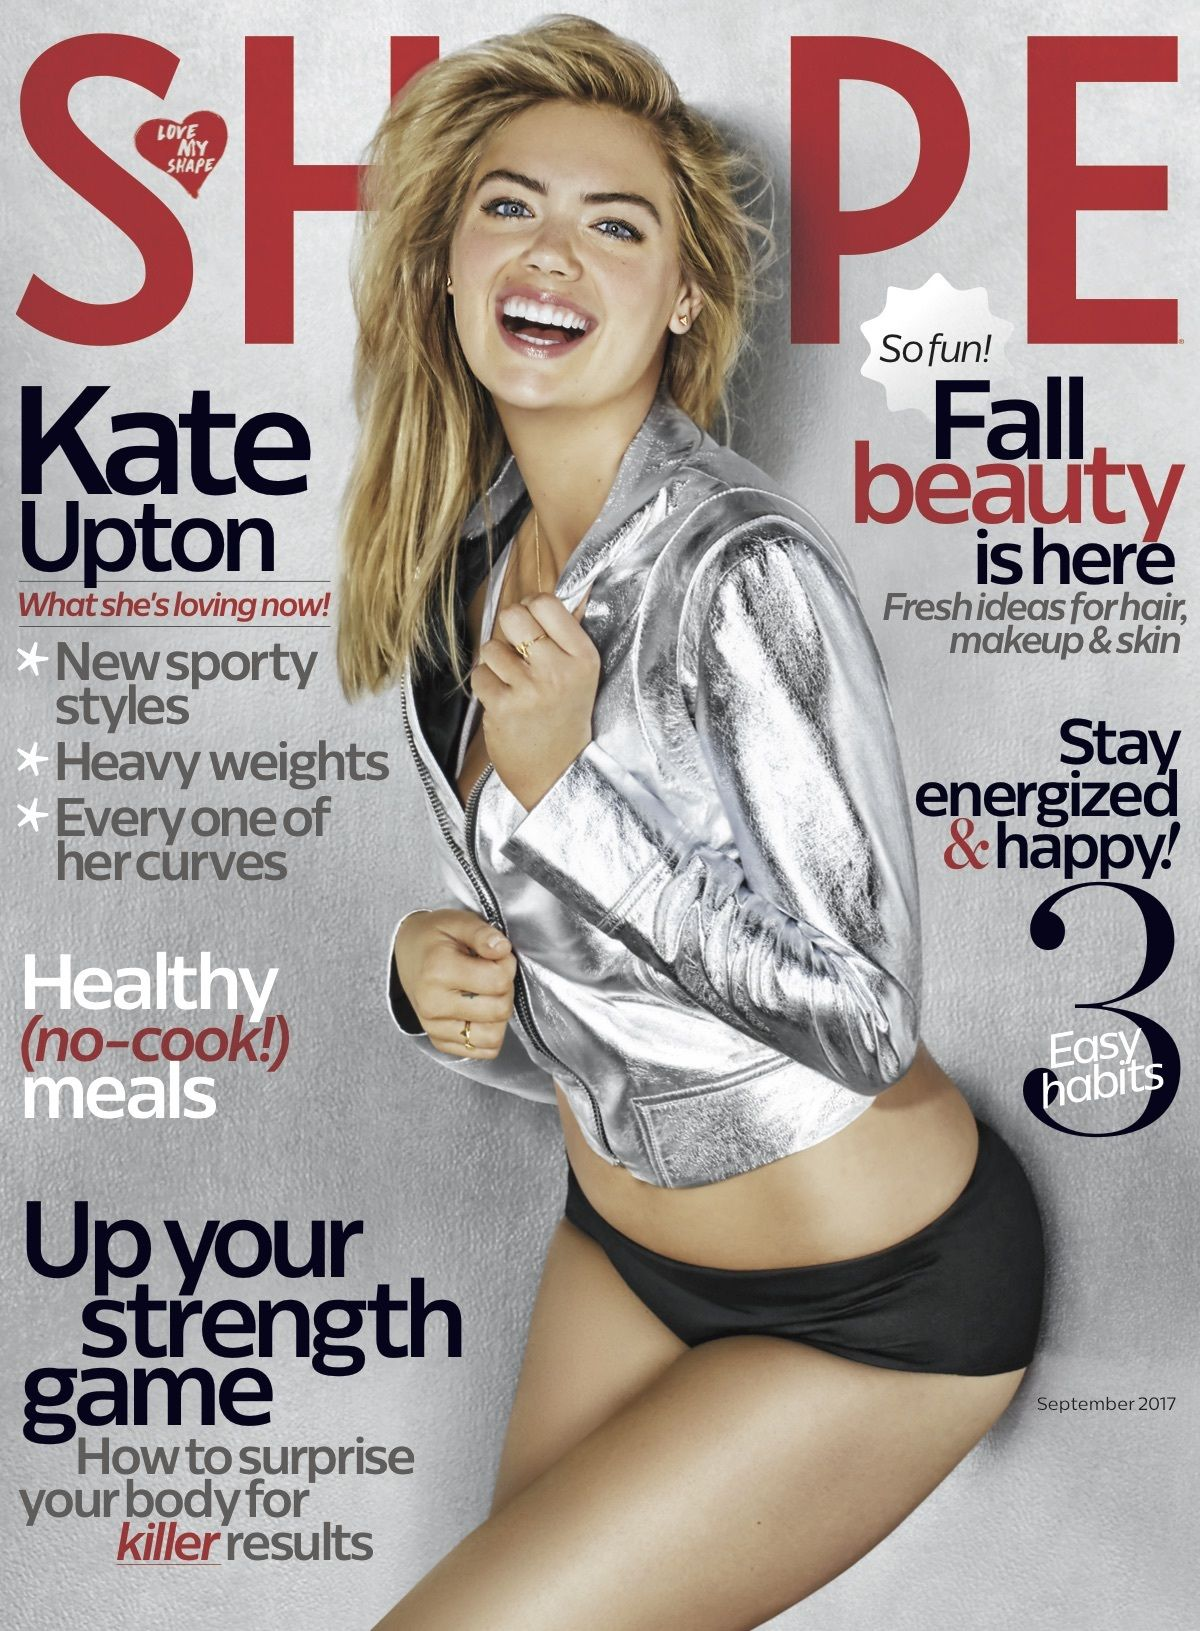 kate-upton-in-shape-magazine-september-2017_1.jpg